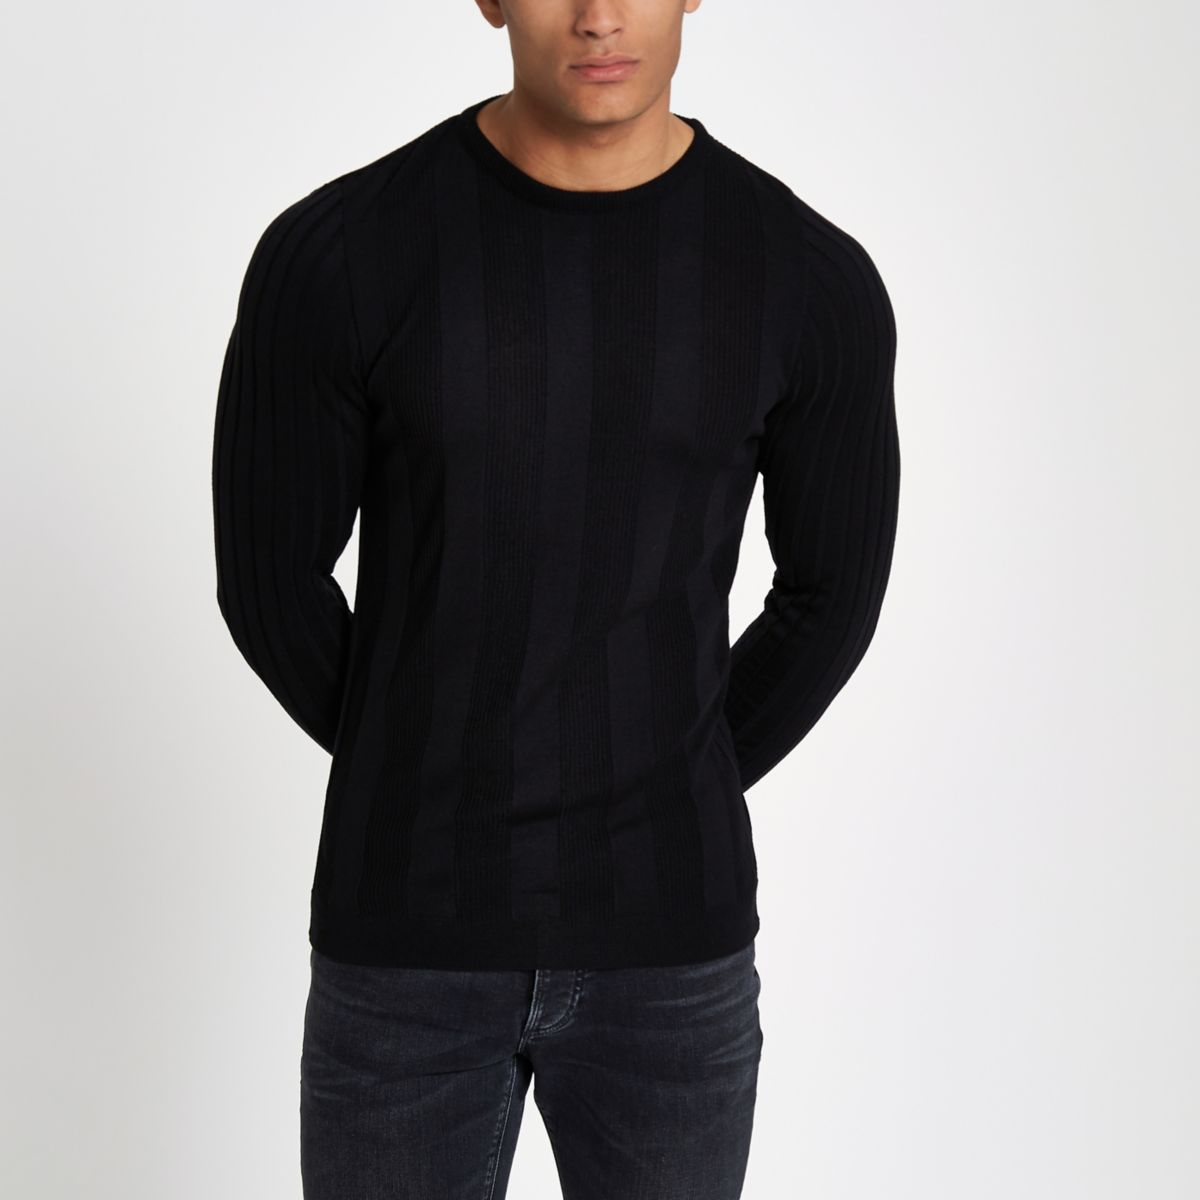 Black long sleeve ribbed muscle fit sweater